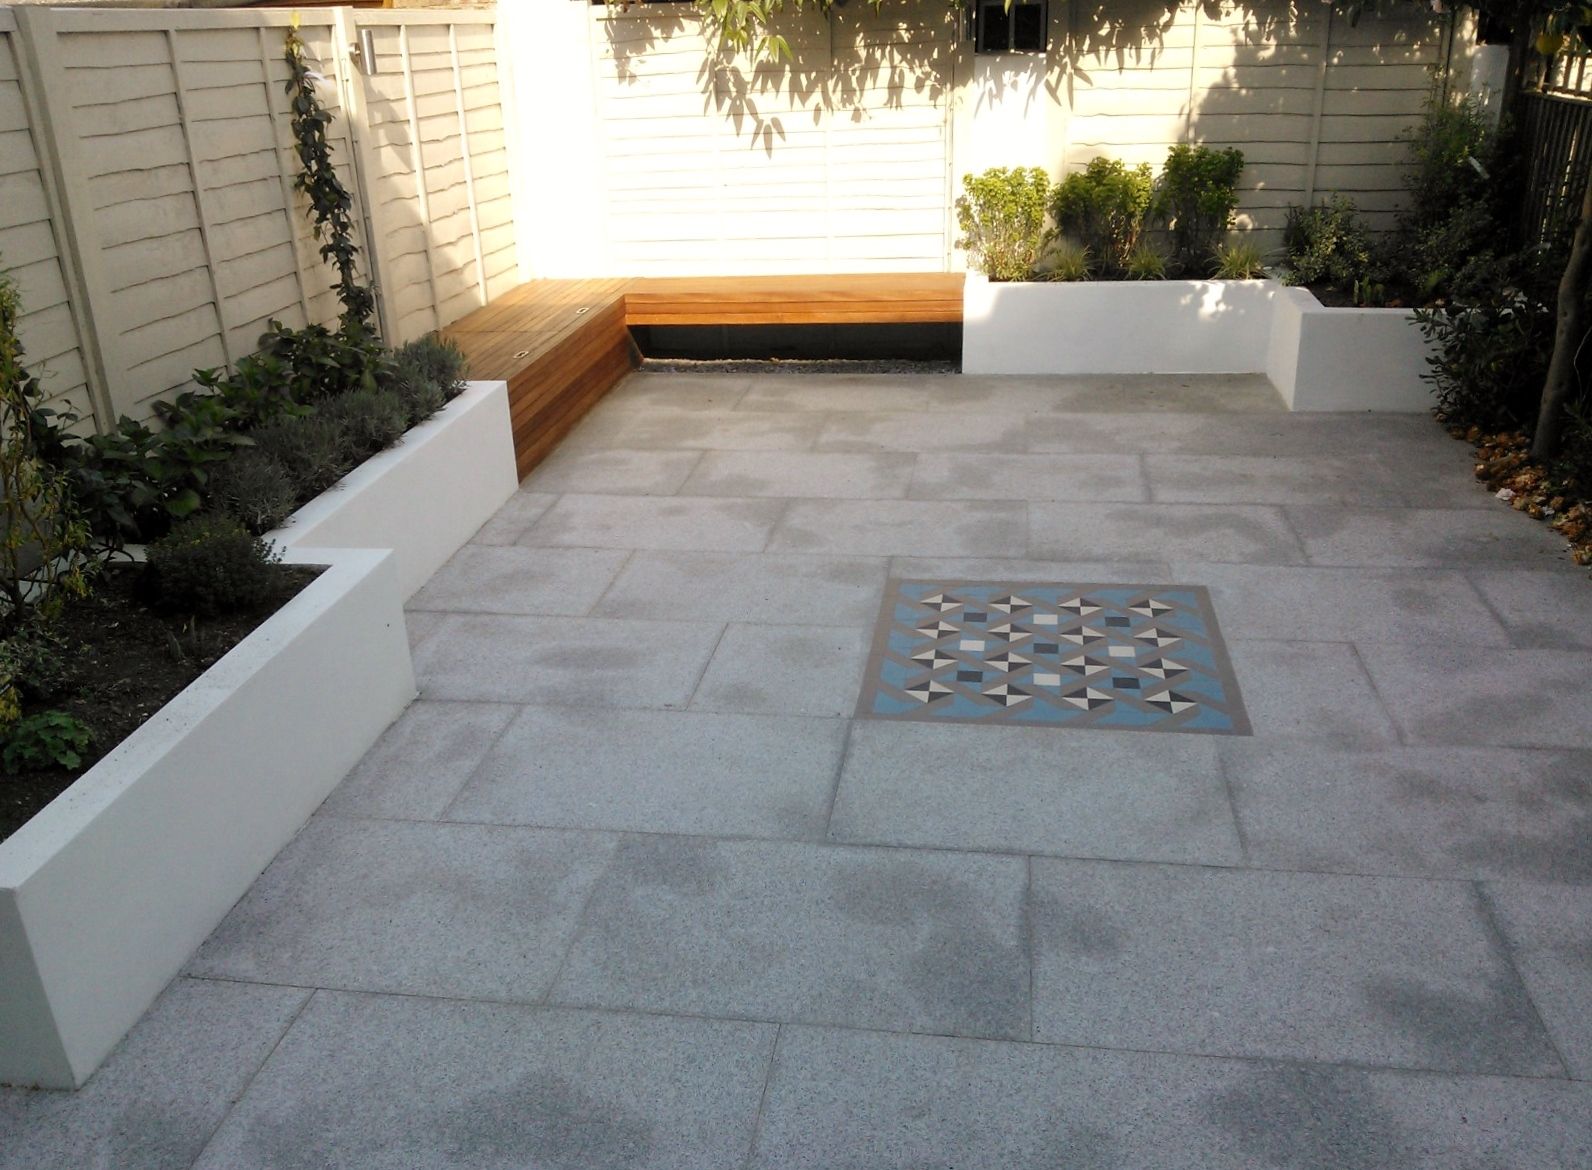 Modern London Garden Design Painted Fence Granite Paving Hardwood Bench Raised Painted beds architectural Planting West London (4)